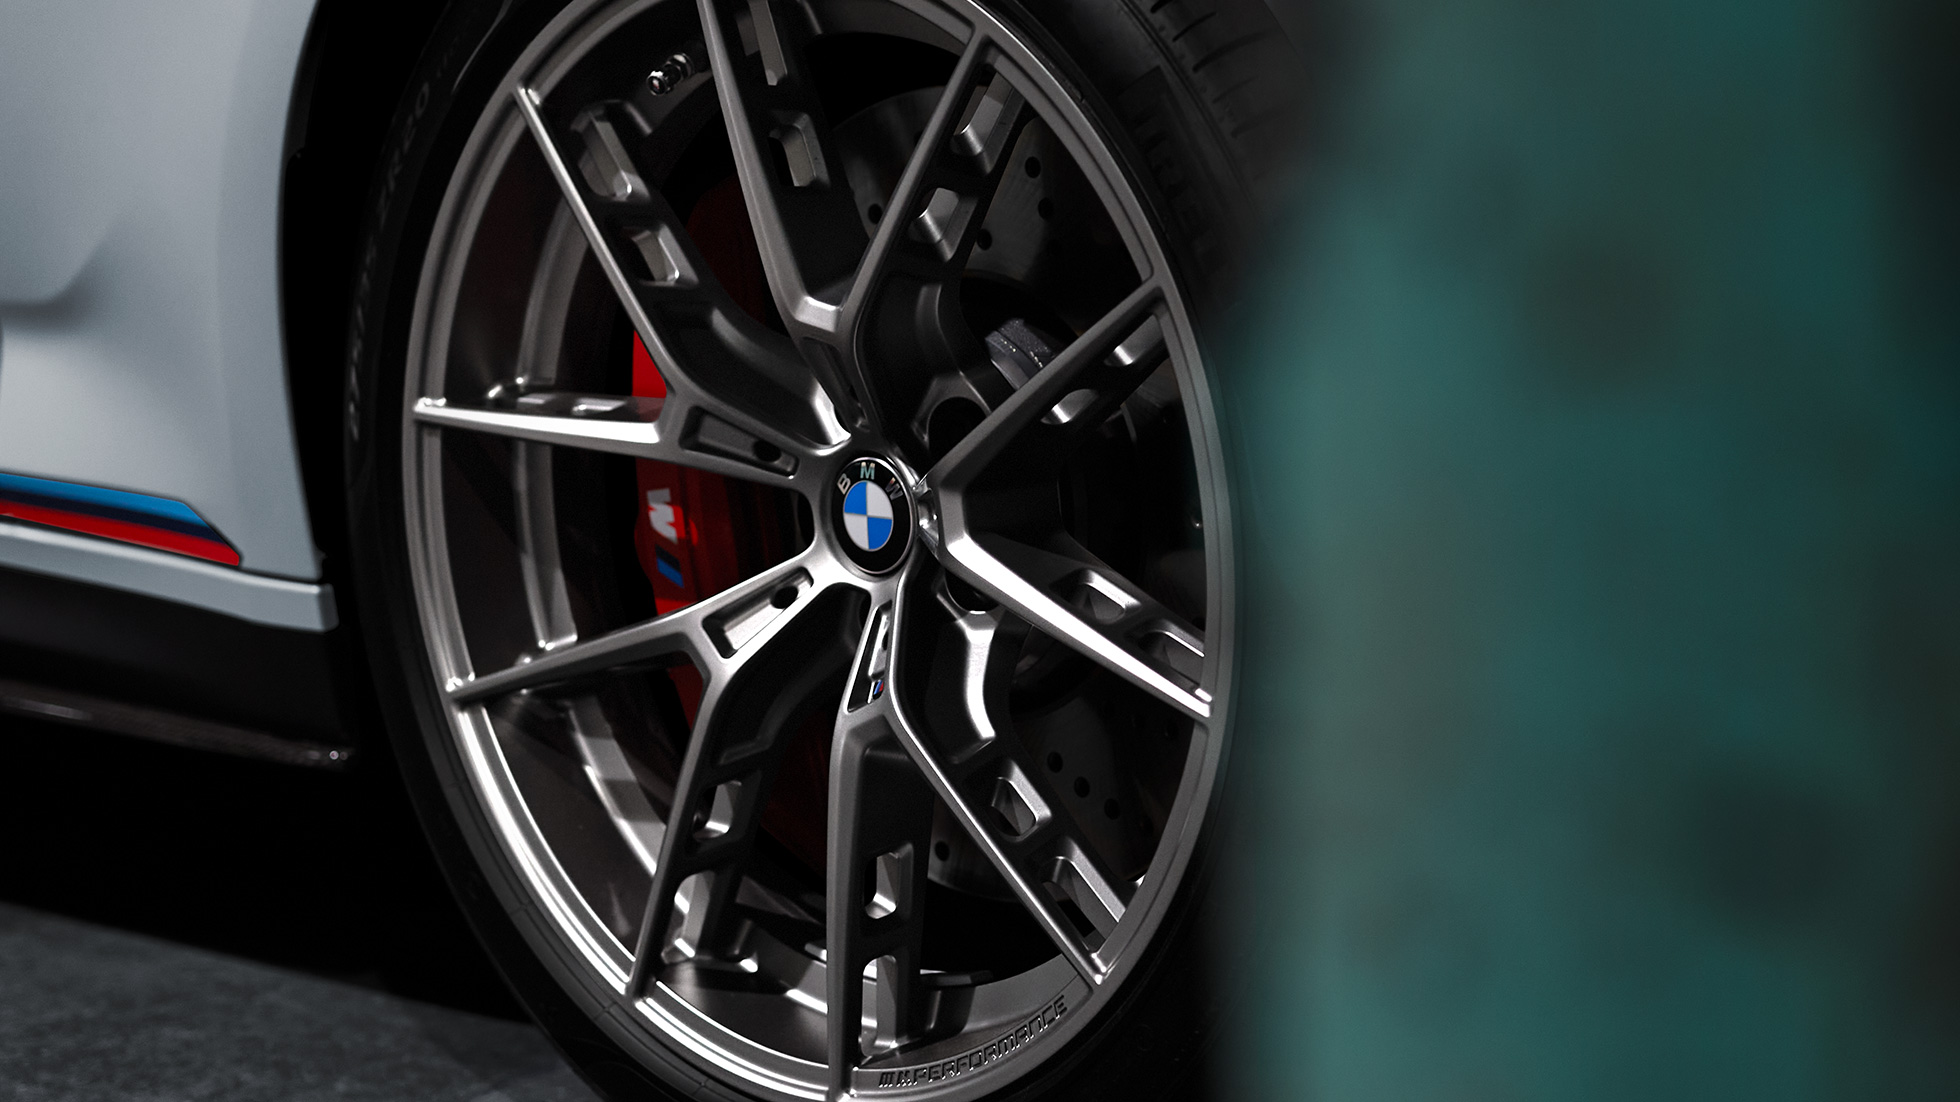 "Cerchio forgiato Accessori BMW M Performance da 20"" M styling a Y nº 863 M Ferric Grey opaco Primo piano"